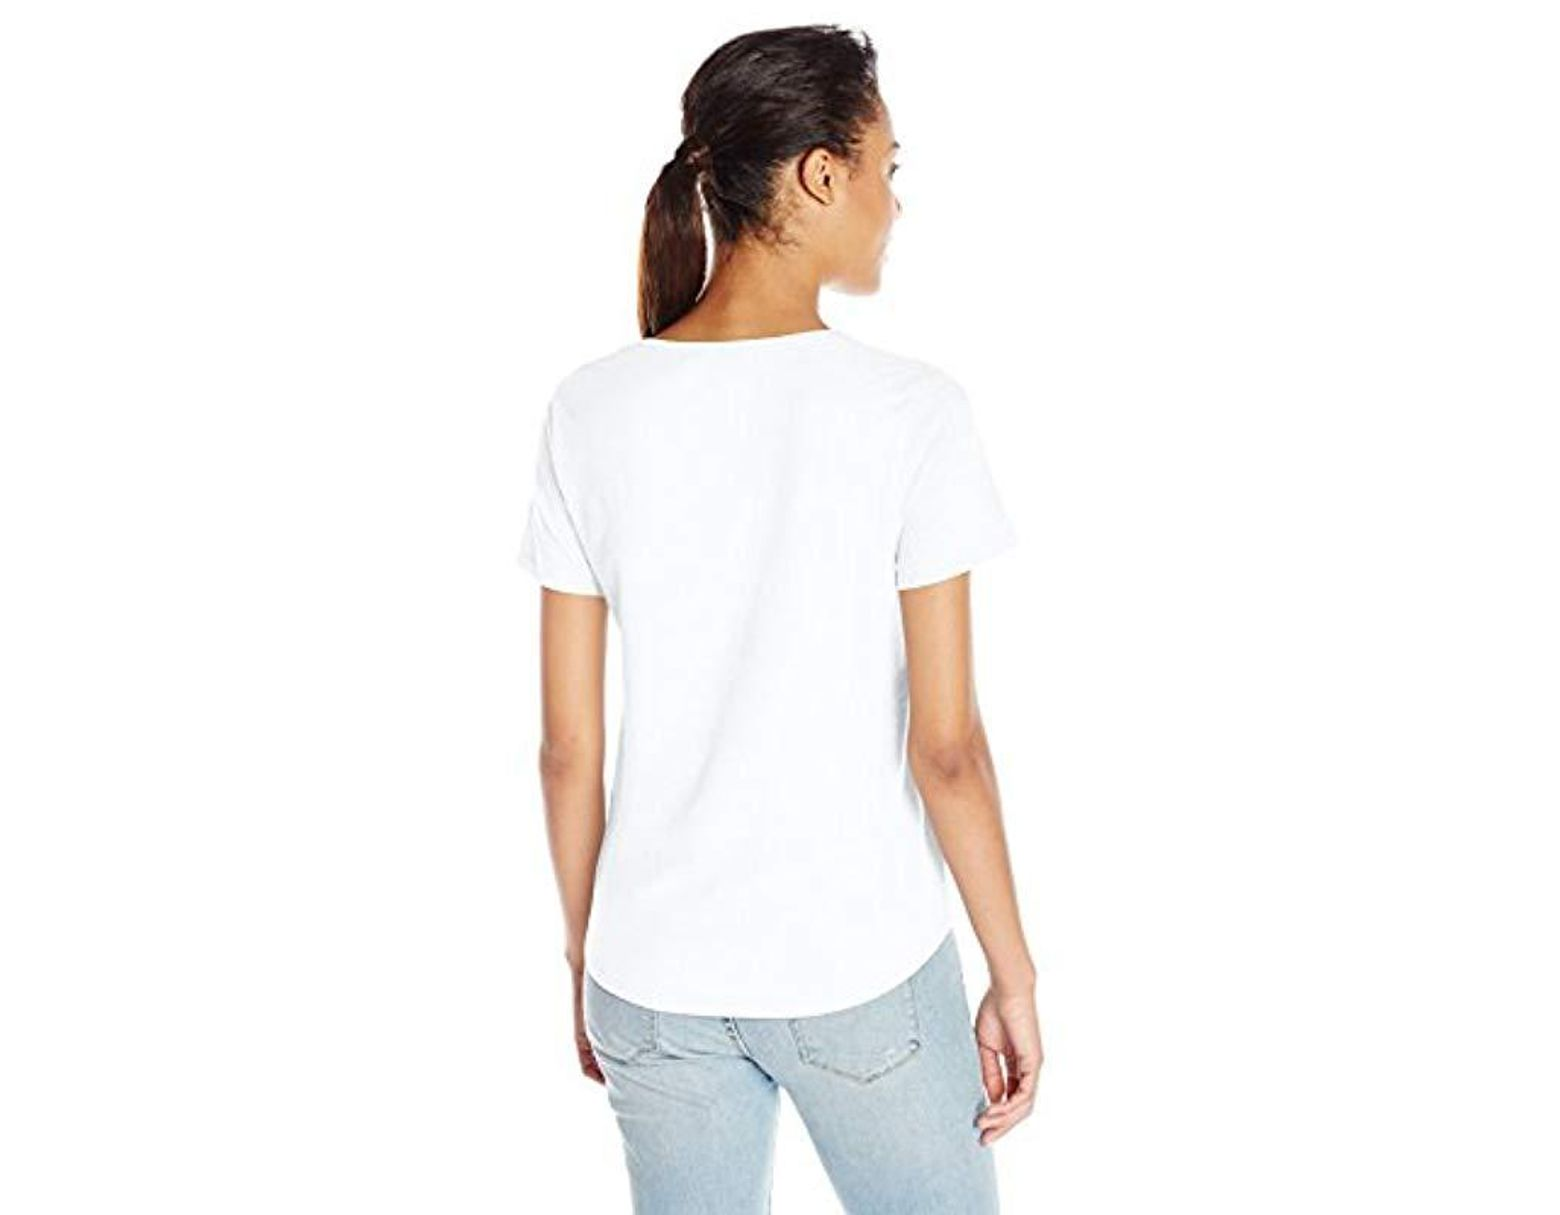 aa21c7cbbd214 Lyst - American Apparel Ultra Wash Short Sleeve Tee in White - Save 53%